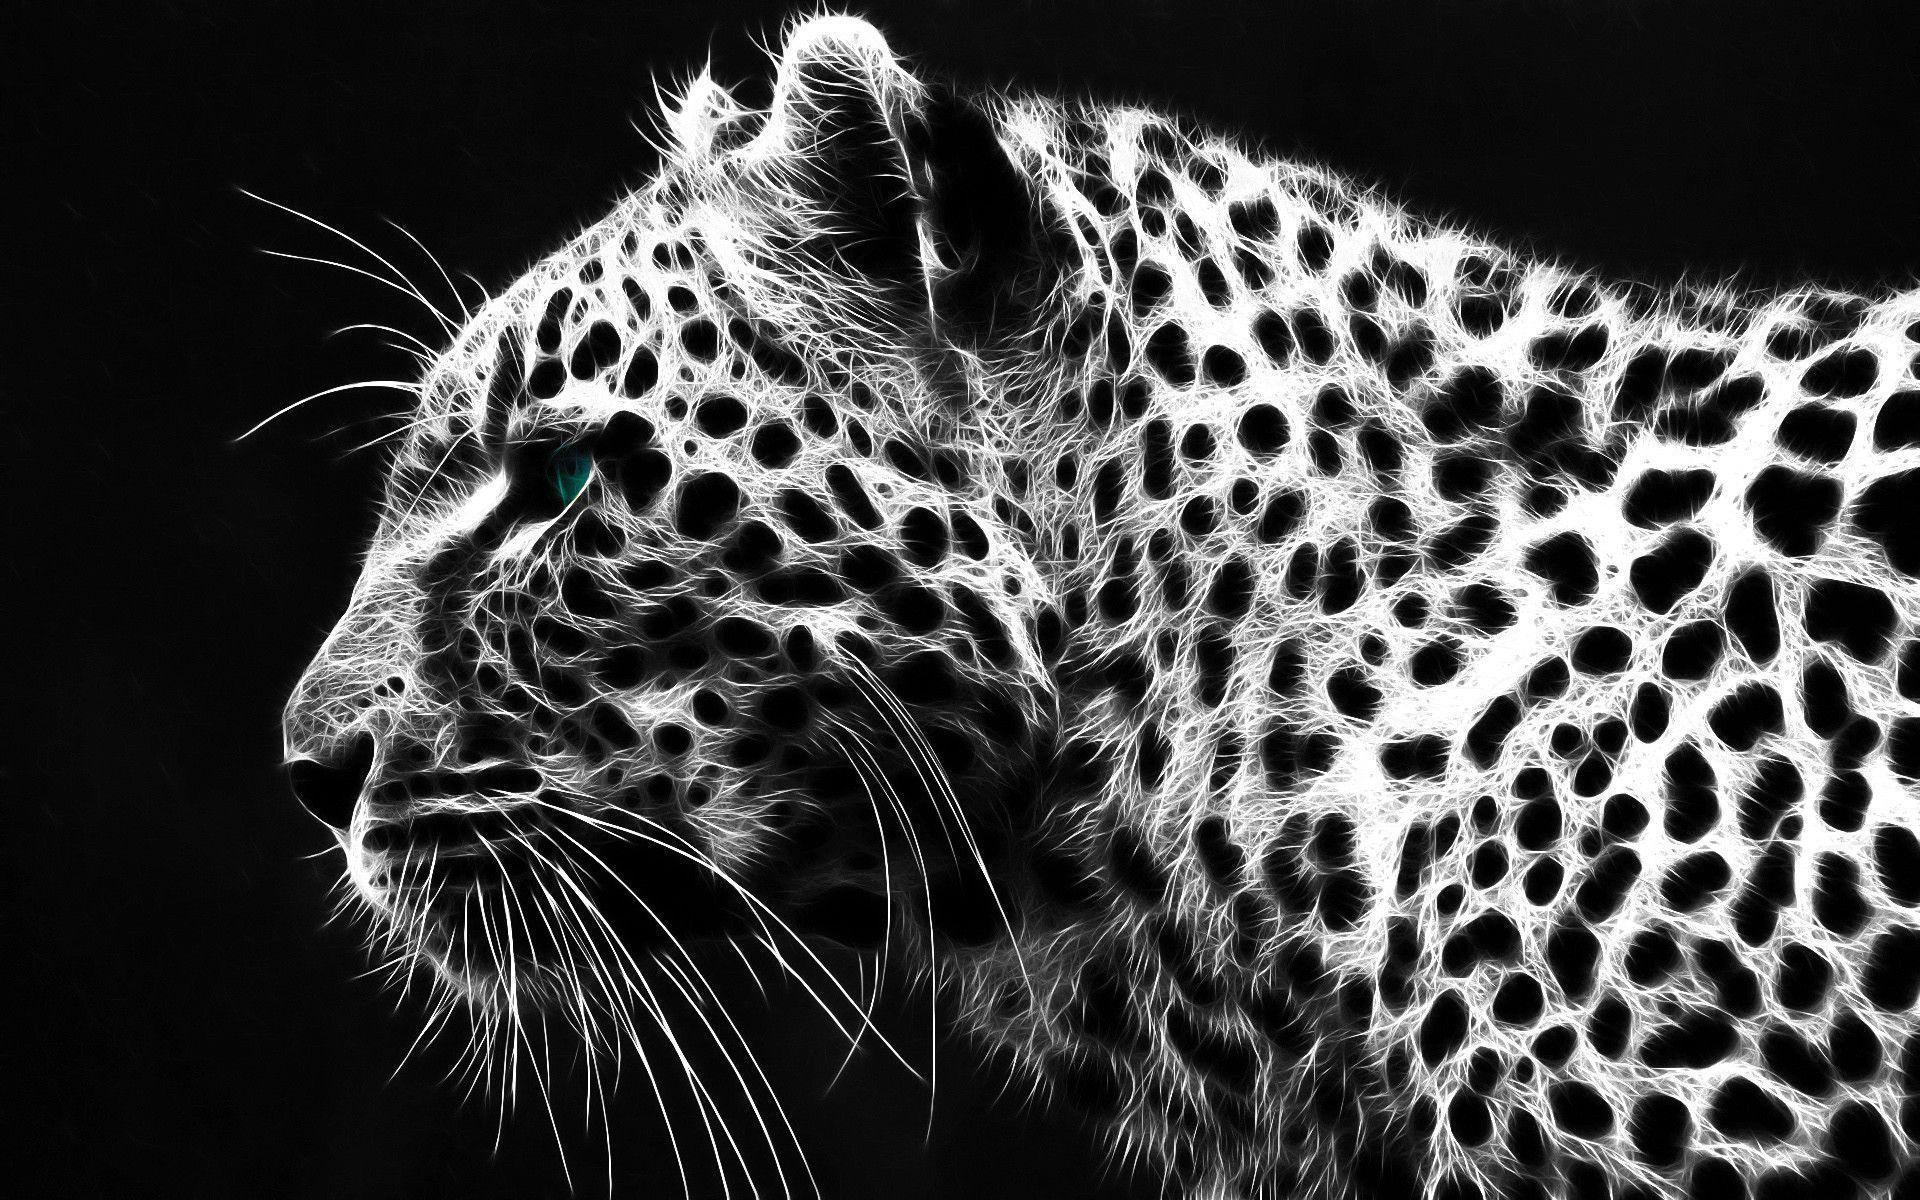 picture of a cheetah cheetah wallpapers hd wallpaper cave cheetah picture of a